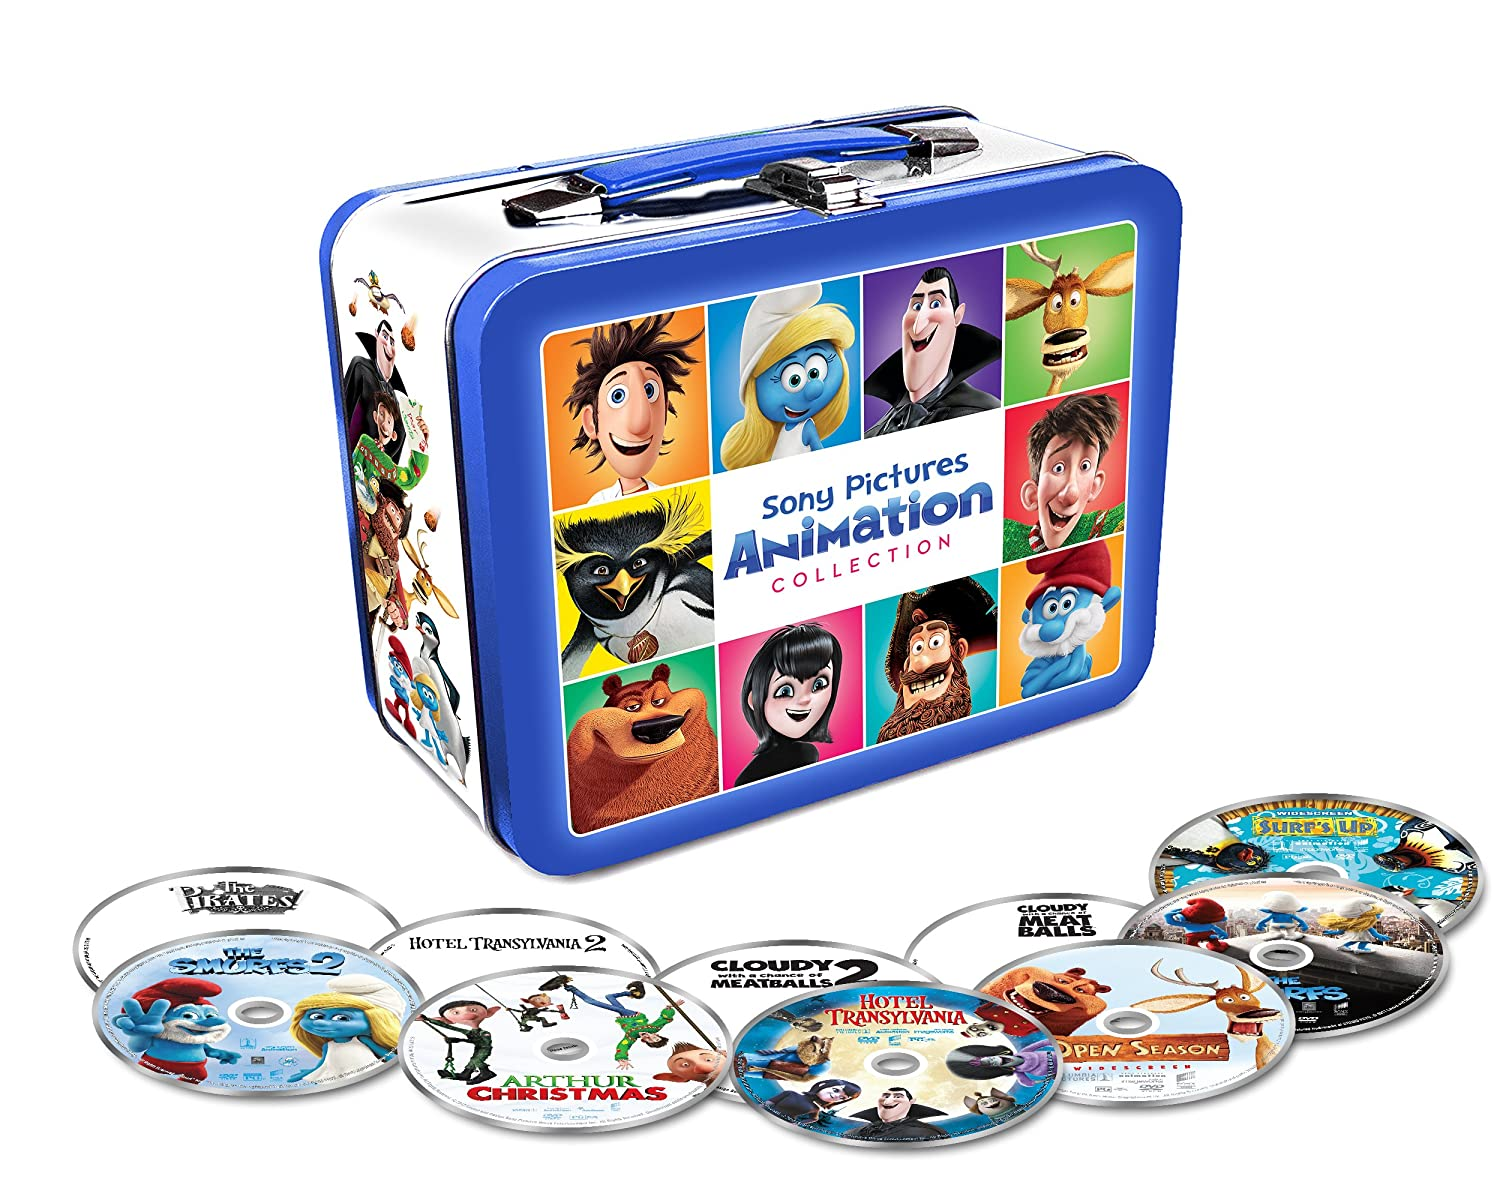 Amazon sony pictures animation collection mft 10 discs amazon sony pictures animation collection mft 10 discs dvd surfsopencloudy 12hotel t12arthurpiratessmurfs 12 multiple movies tv negle Image collections